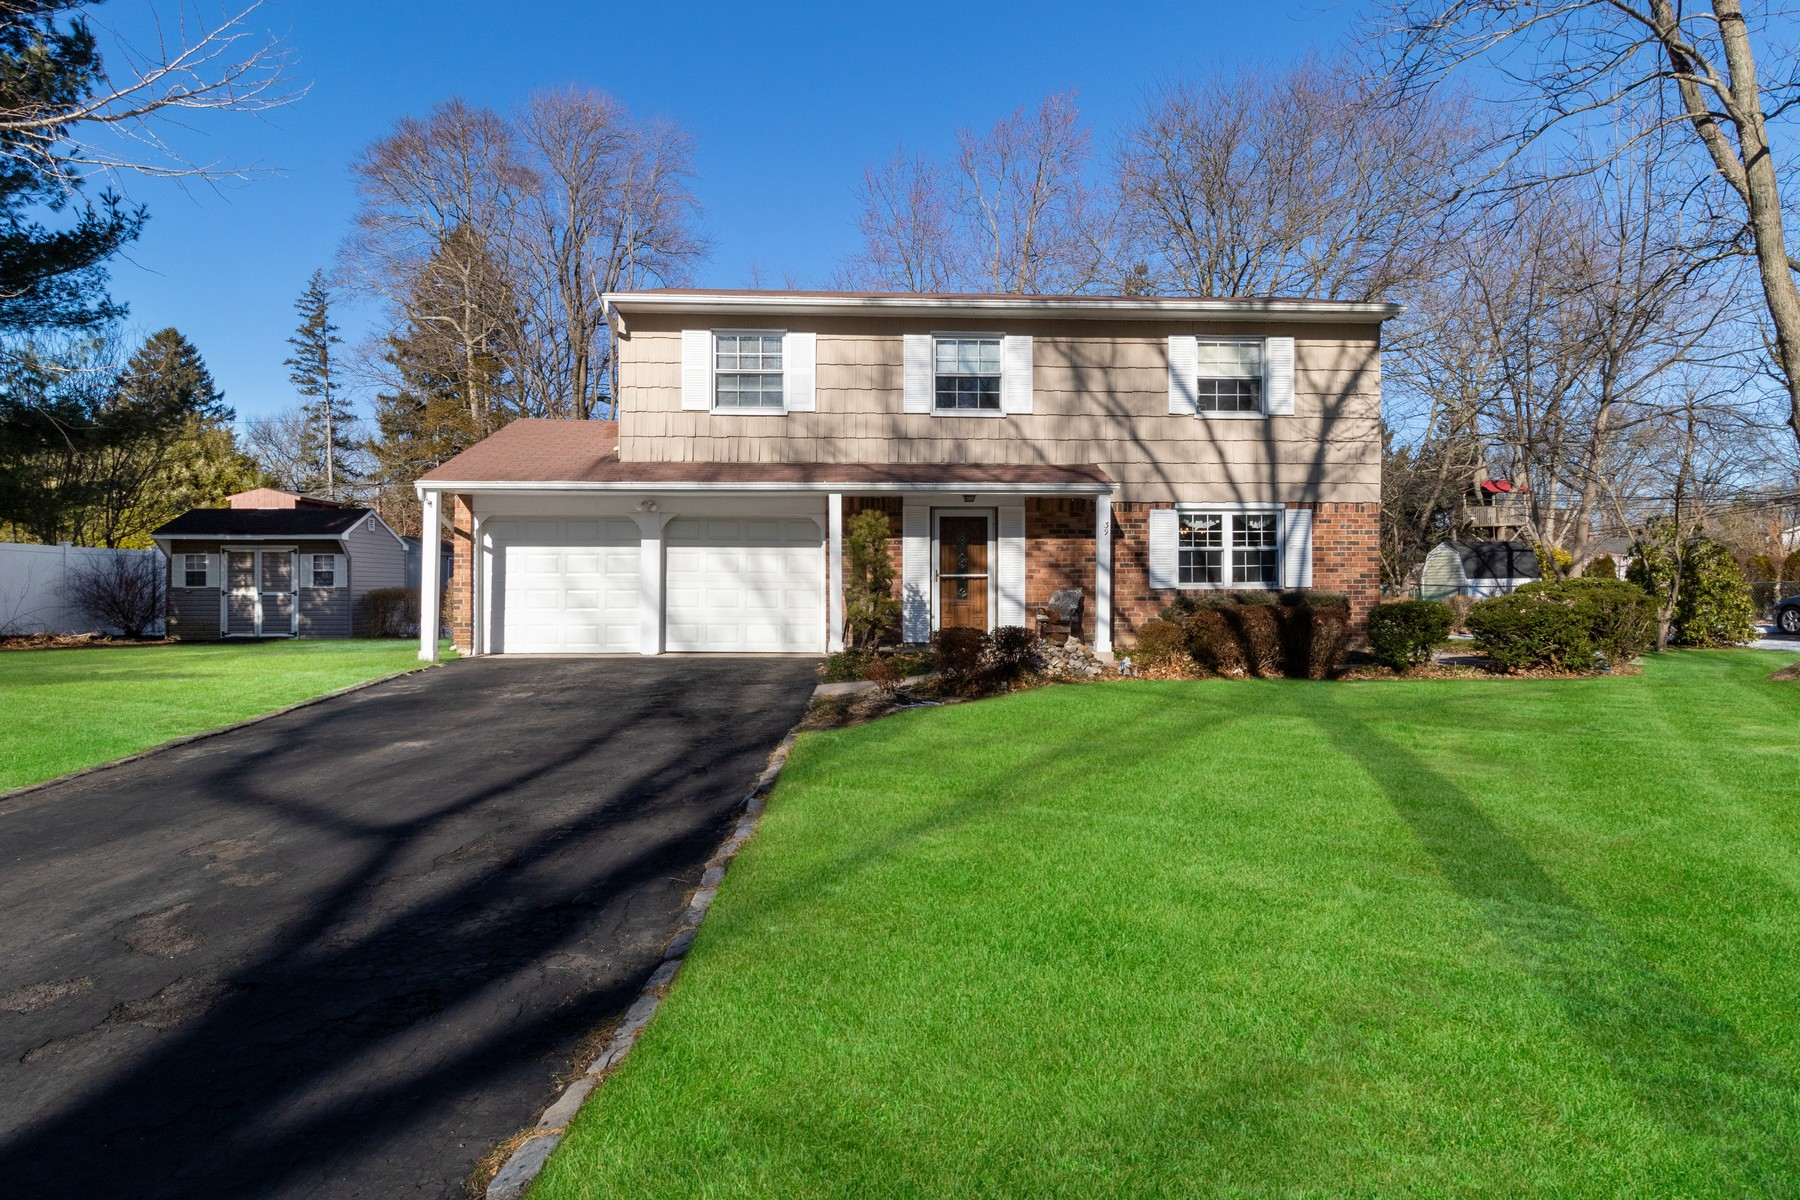 Single Family Homes for Active at Greenlawn 39 Aster Street Greenlawn, New York 11740 United States